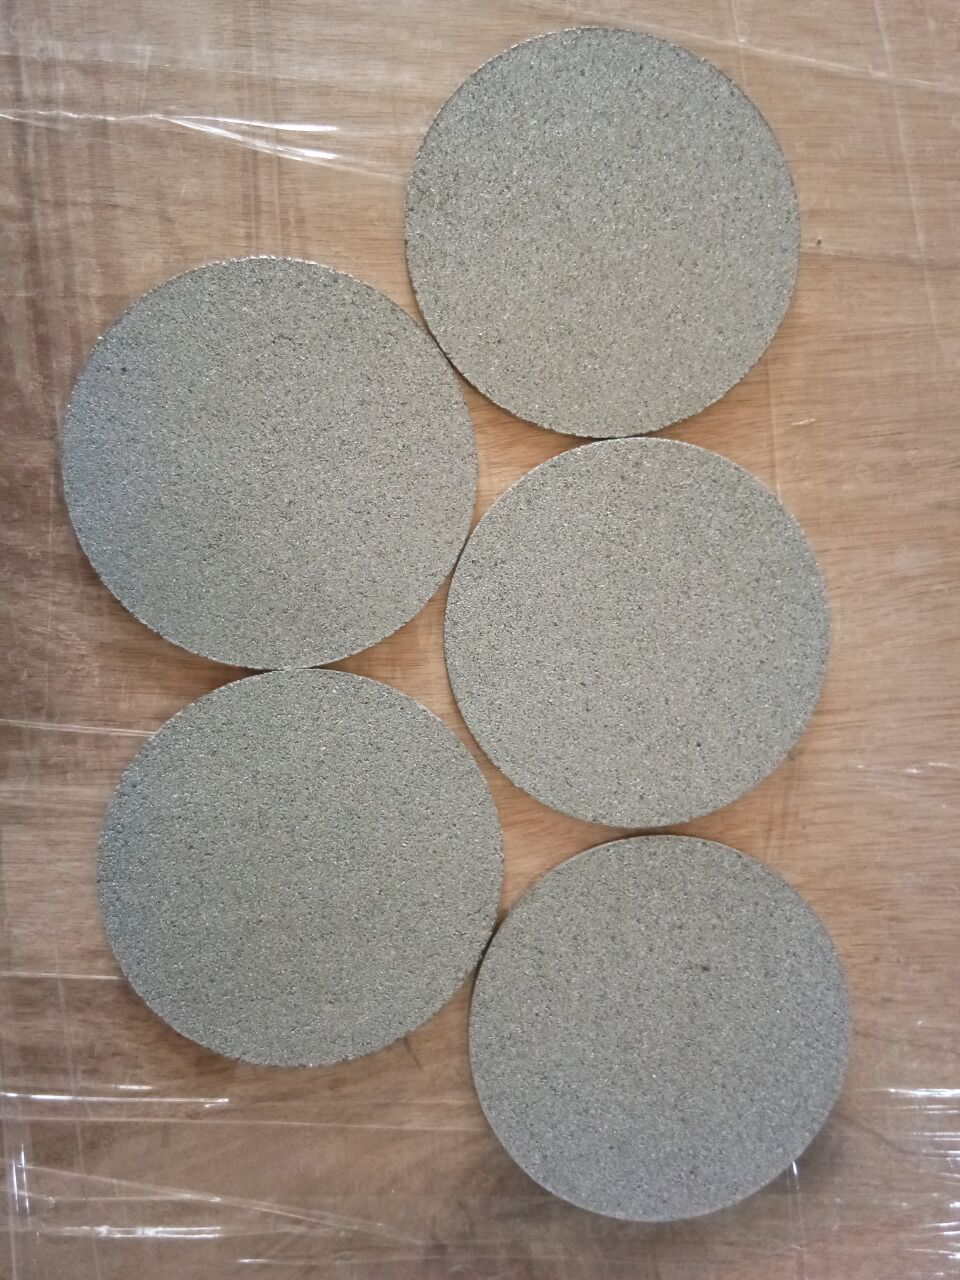 porous stainless steel porous disc thickness 2.3mm